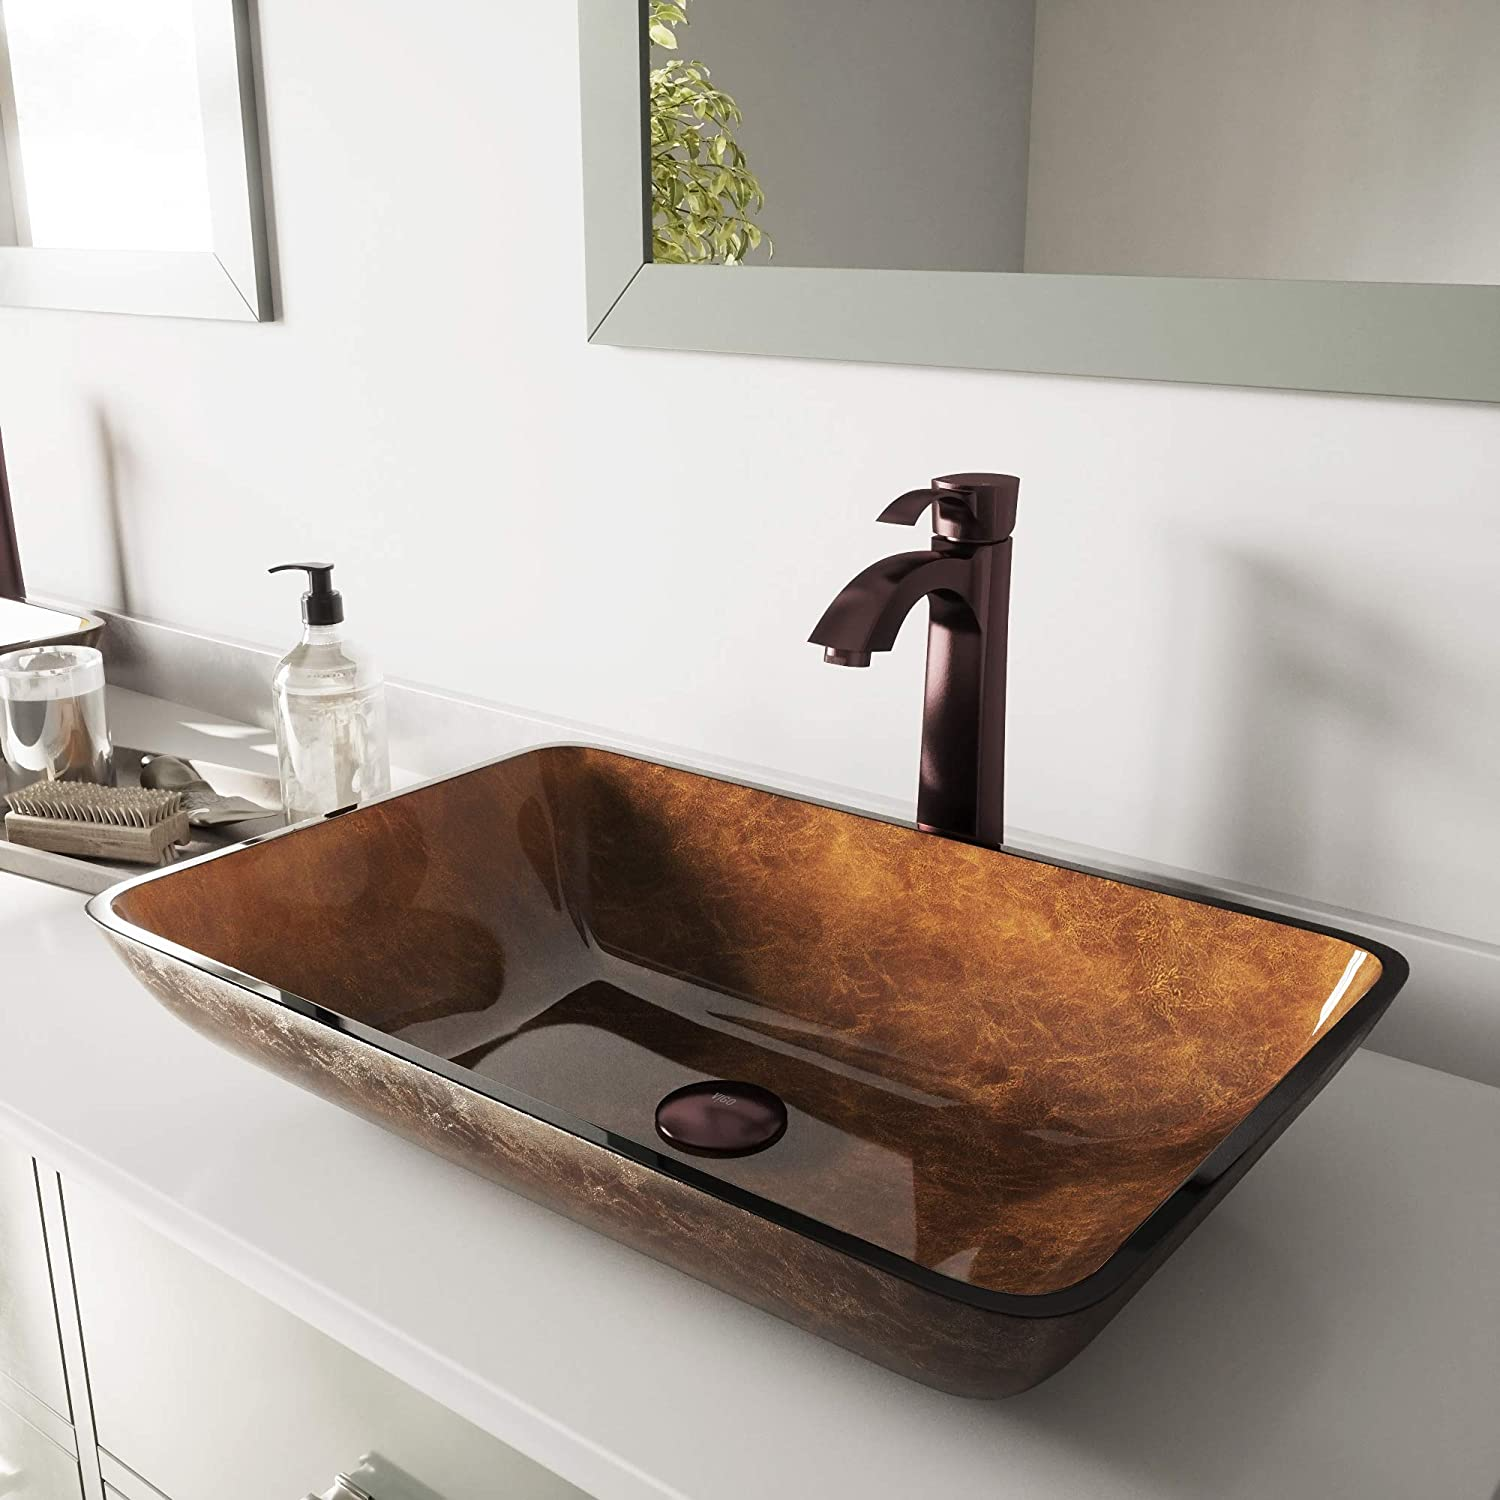 VIGO Rectangular Russet Glass Vessel Bathroom Sink and Otis Vessel Faucet with Pop Up, Oil Rubbed Bronze